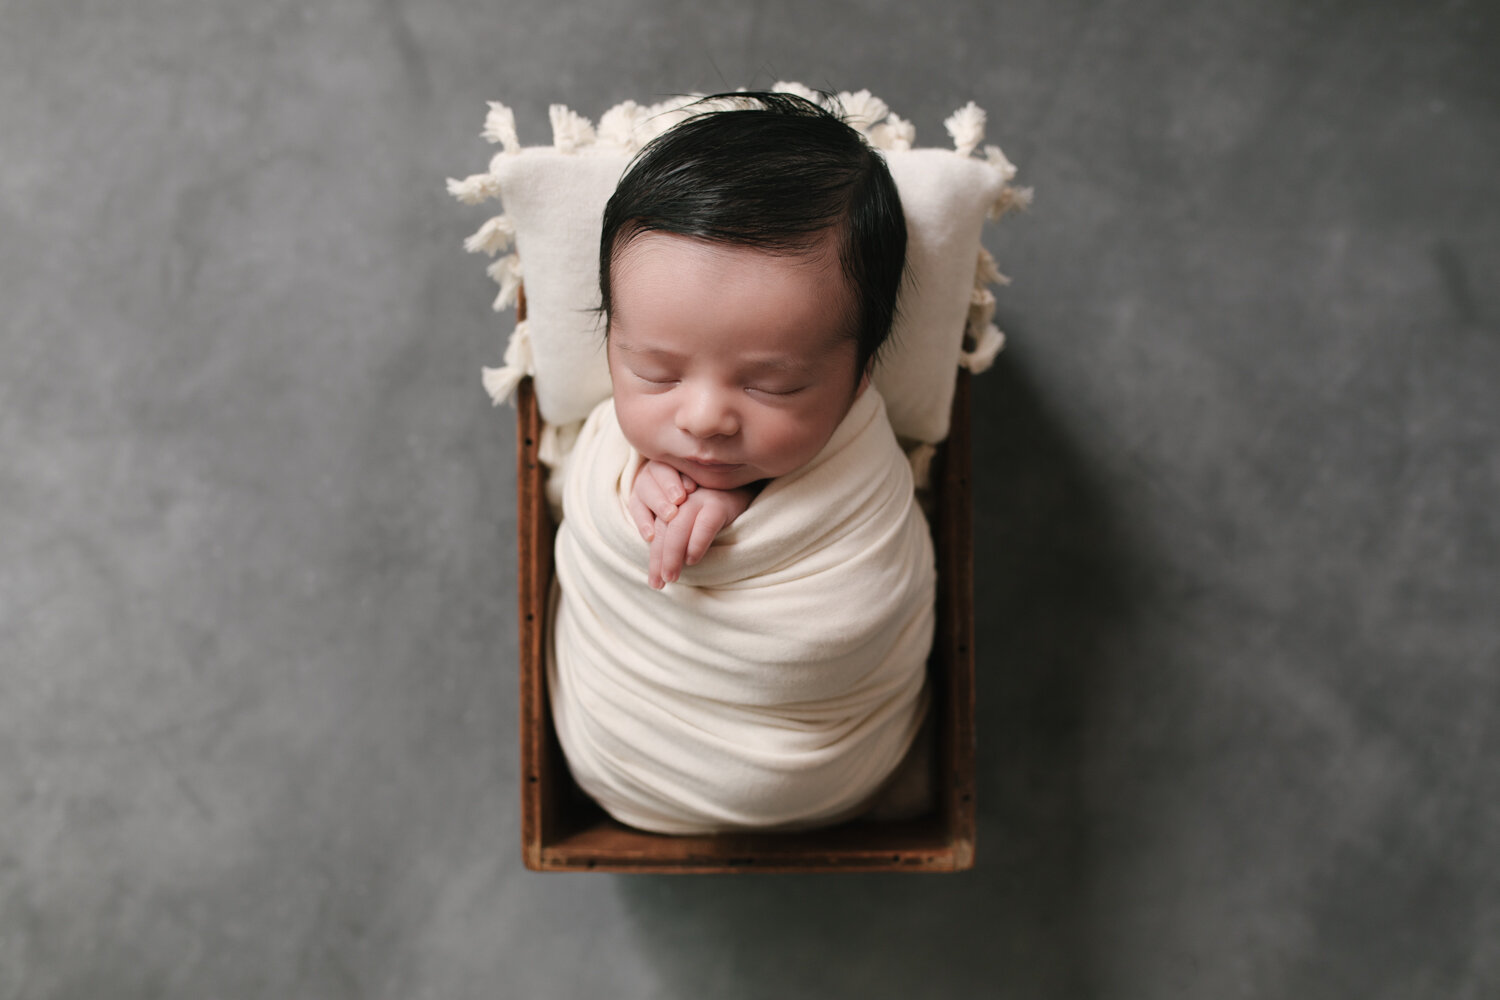 Simple_Minimalist_Newborn_Session_Mini_Newborn_Shoot_Inexpensive_Newborn_Photos_in_Boardman__ohio_with_Turkish_and_Romanian_Baby_Baby_Boy_Cream_and_Gray_Baby_Pictures_by_Newborn_Photographer_Christie_Leigh_Photo_in_Farmdale_OH-5.JPG